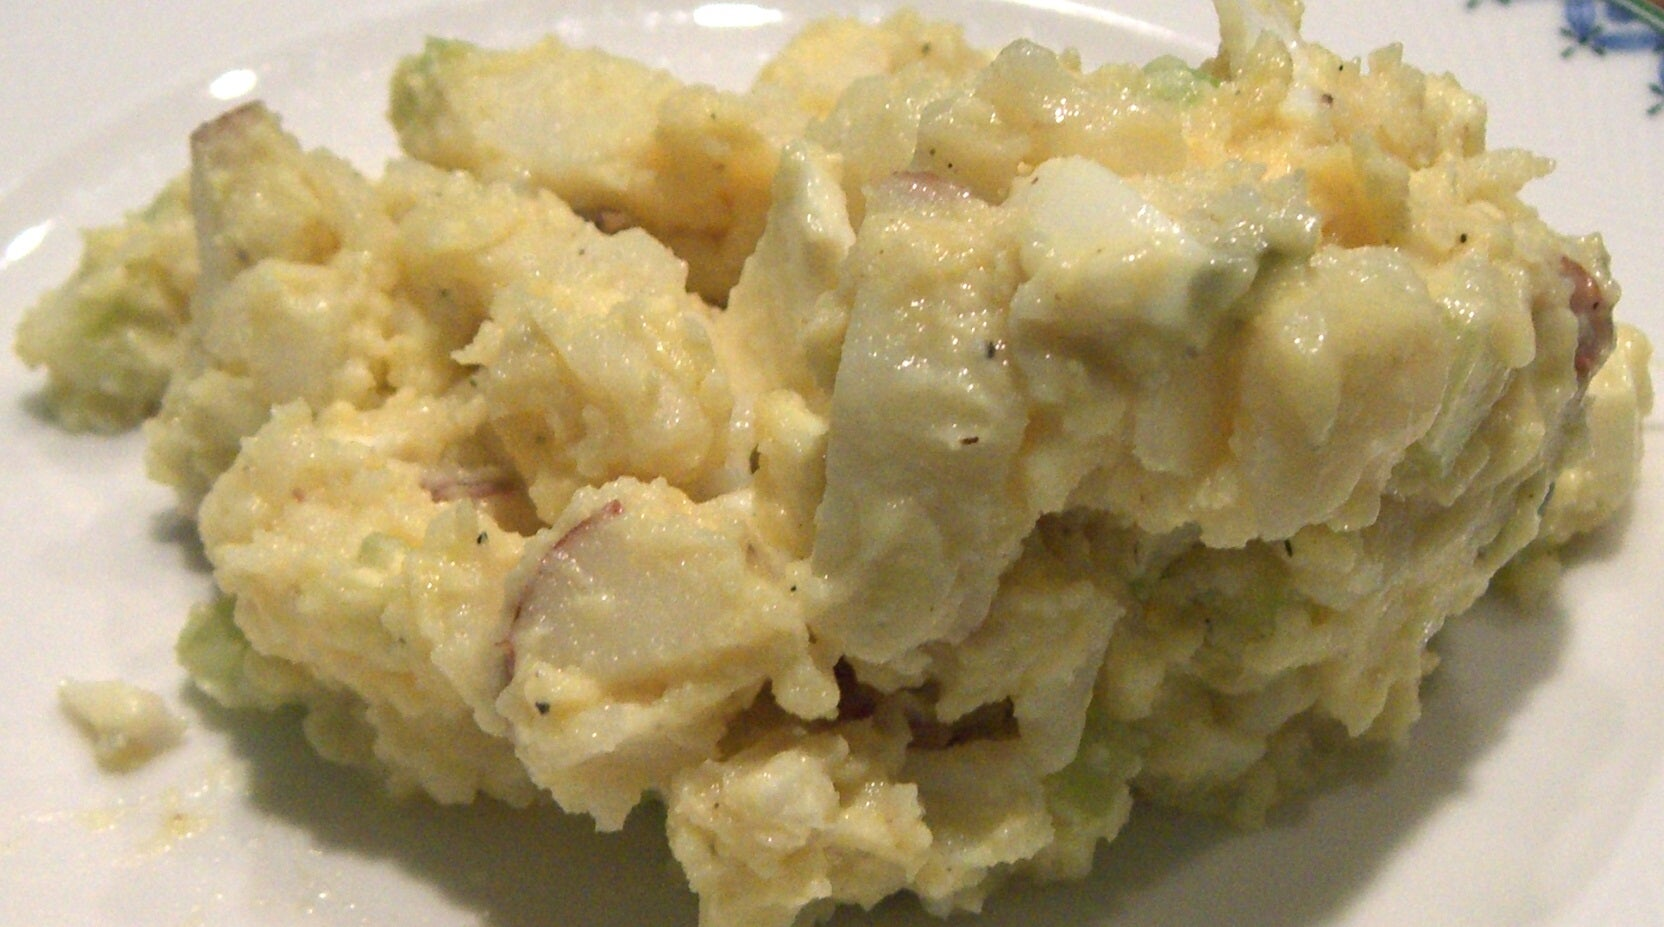 Potato Salad Kickstarter Finally Concludes at $US55k